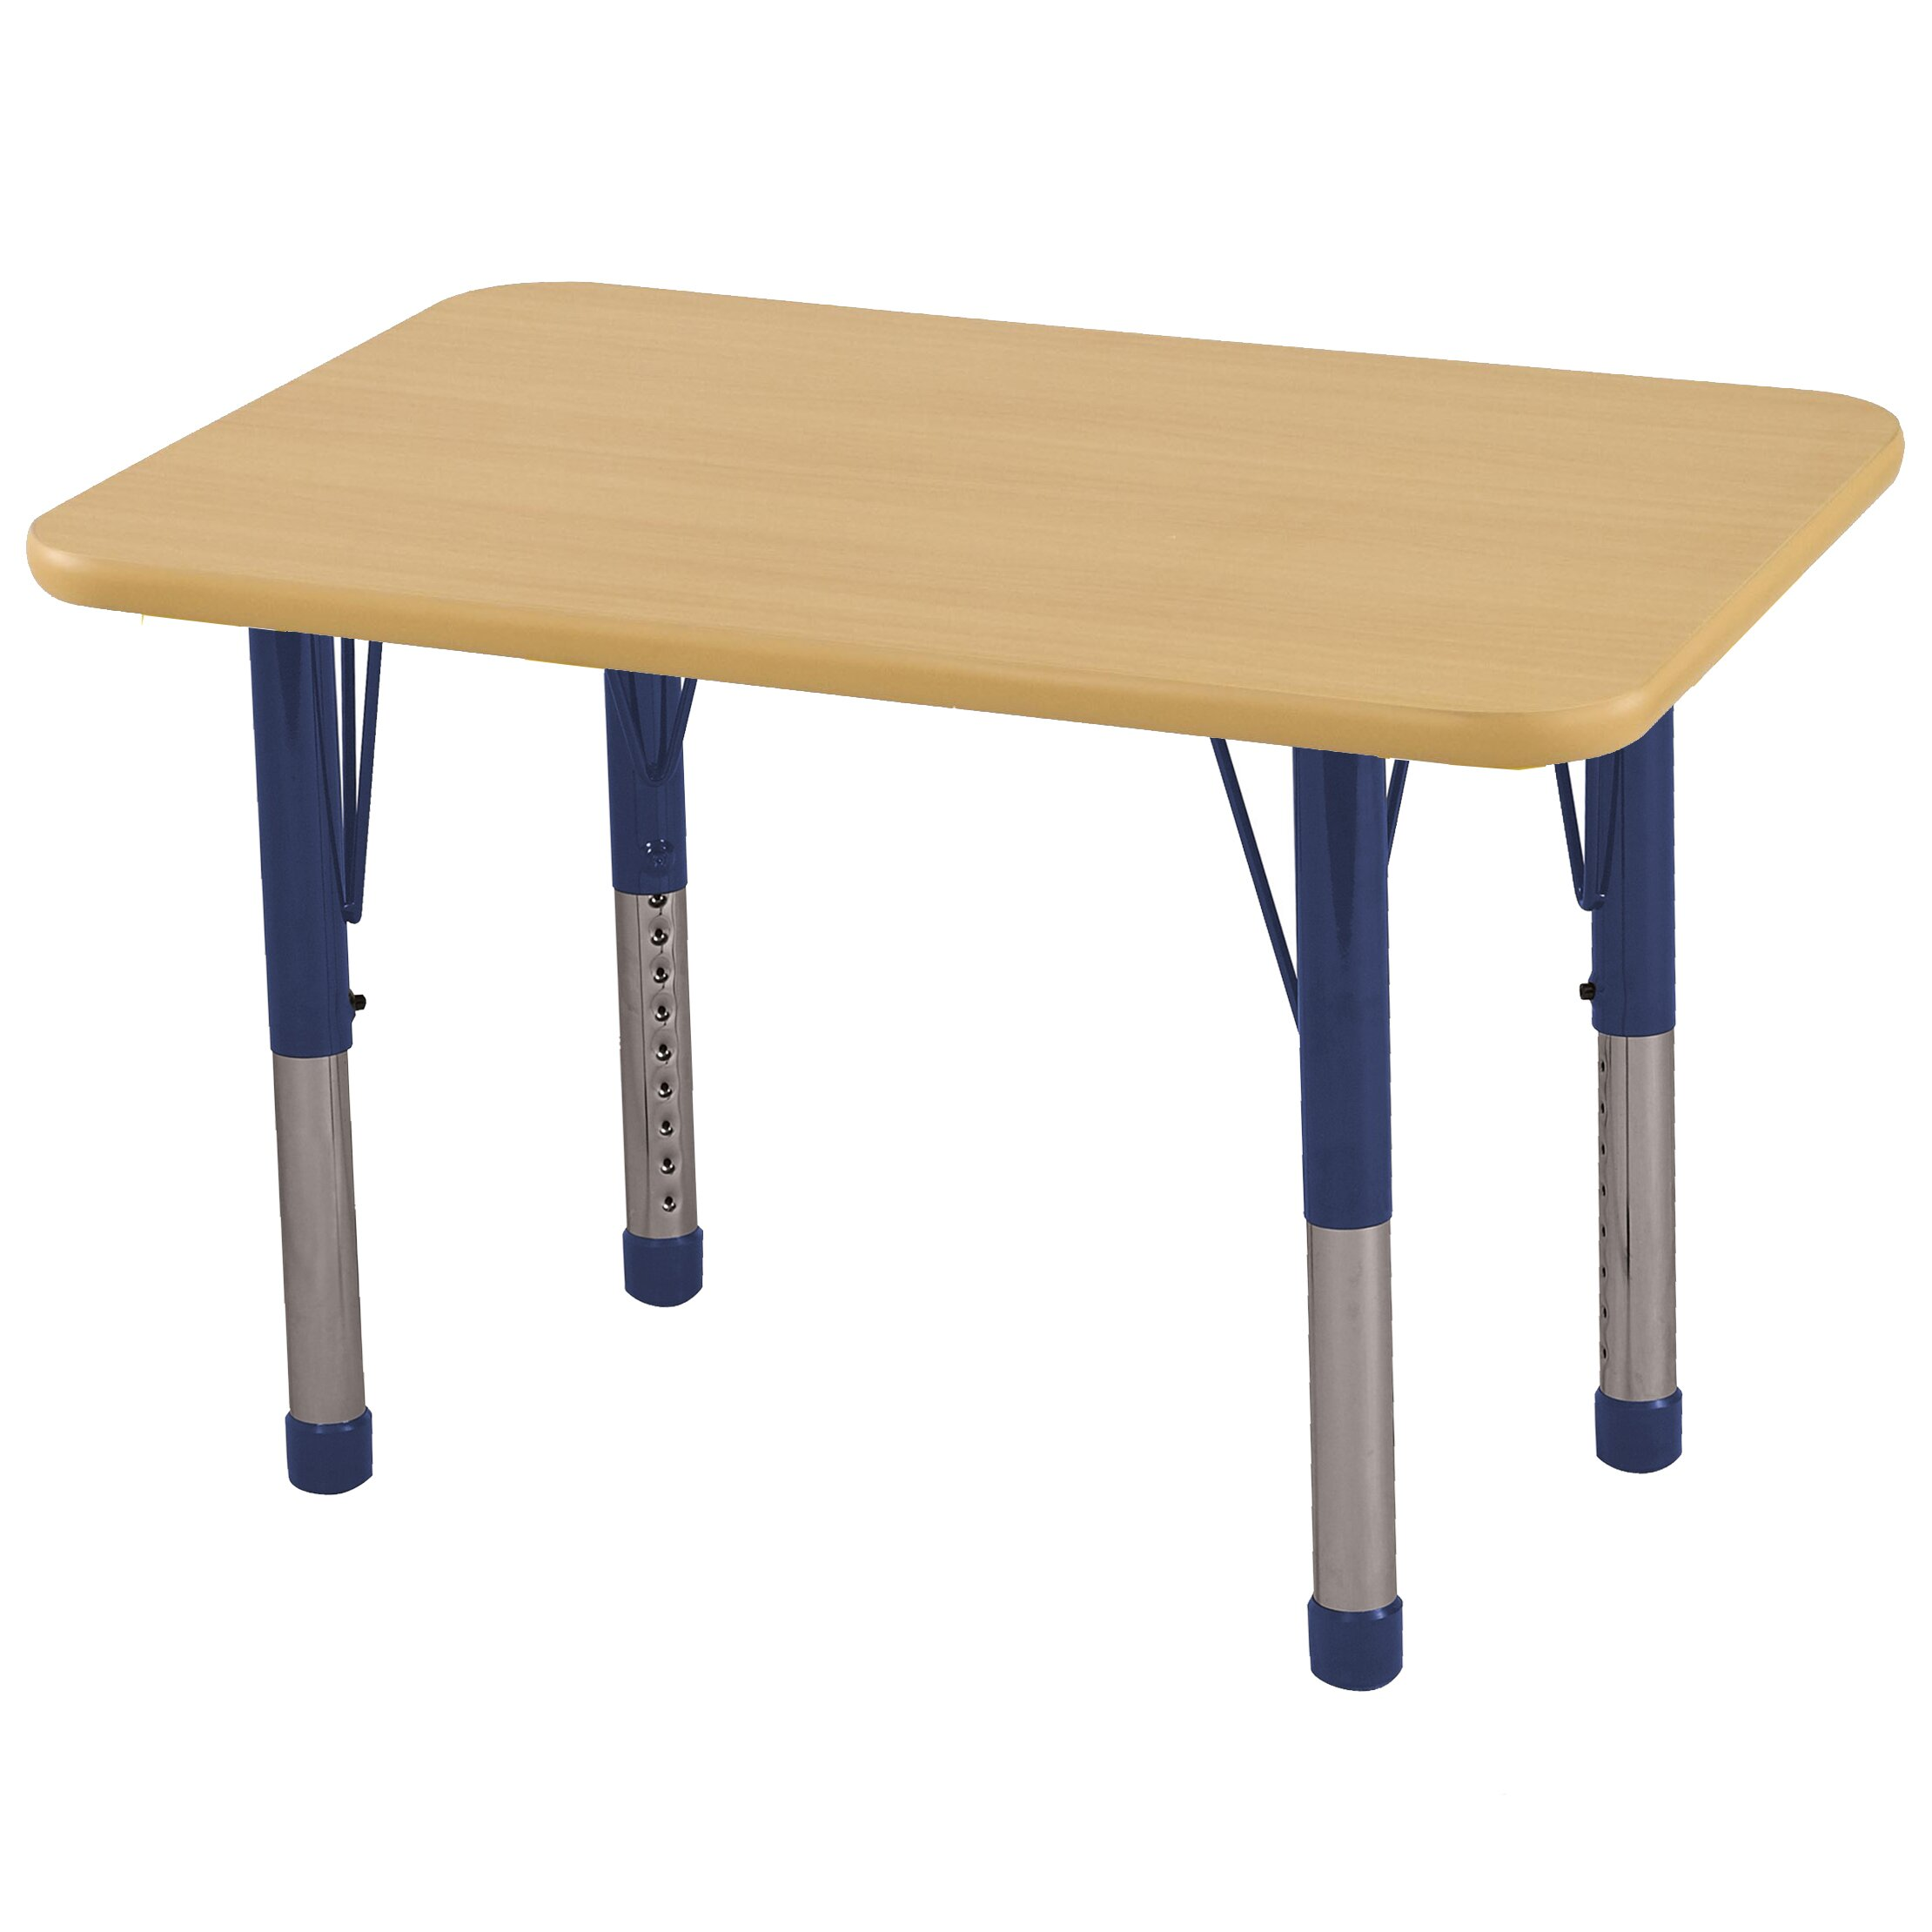 Ecr4kids ecr4kids 36 x 24 rectangular activity table for Table x reviews